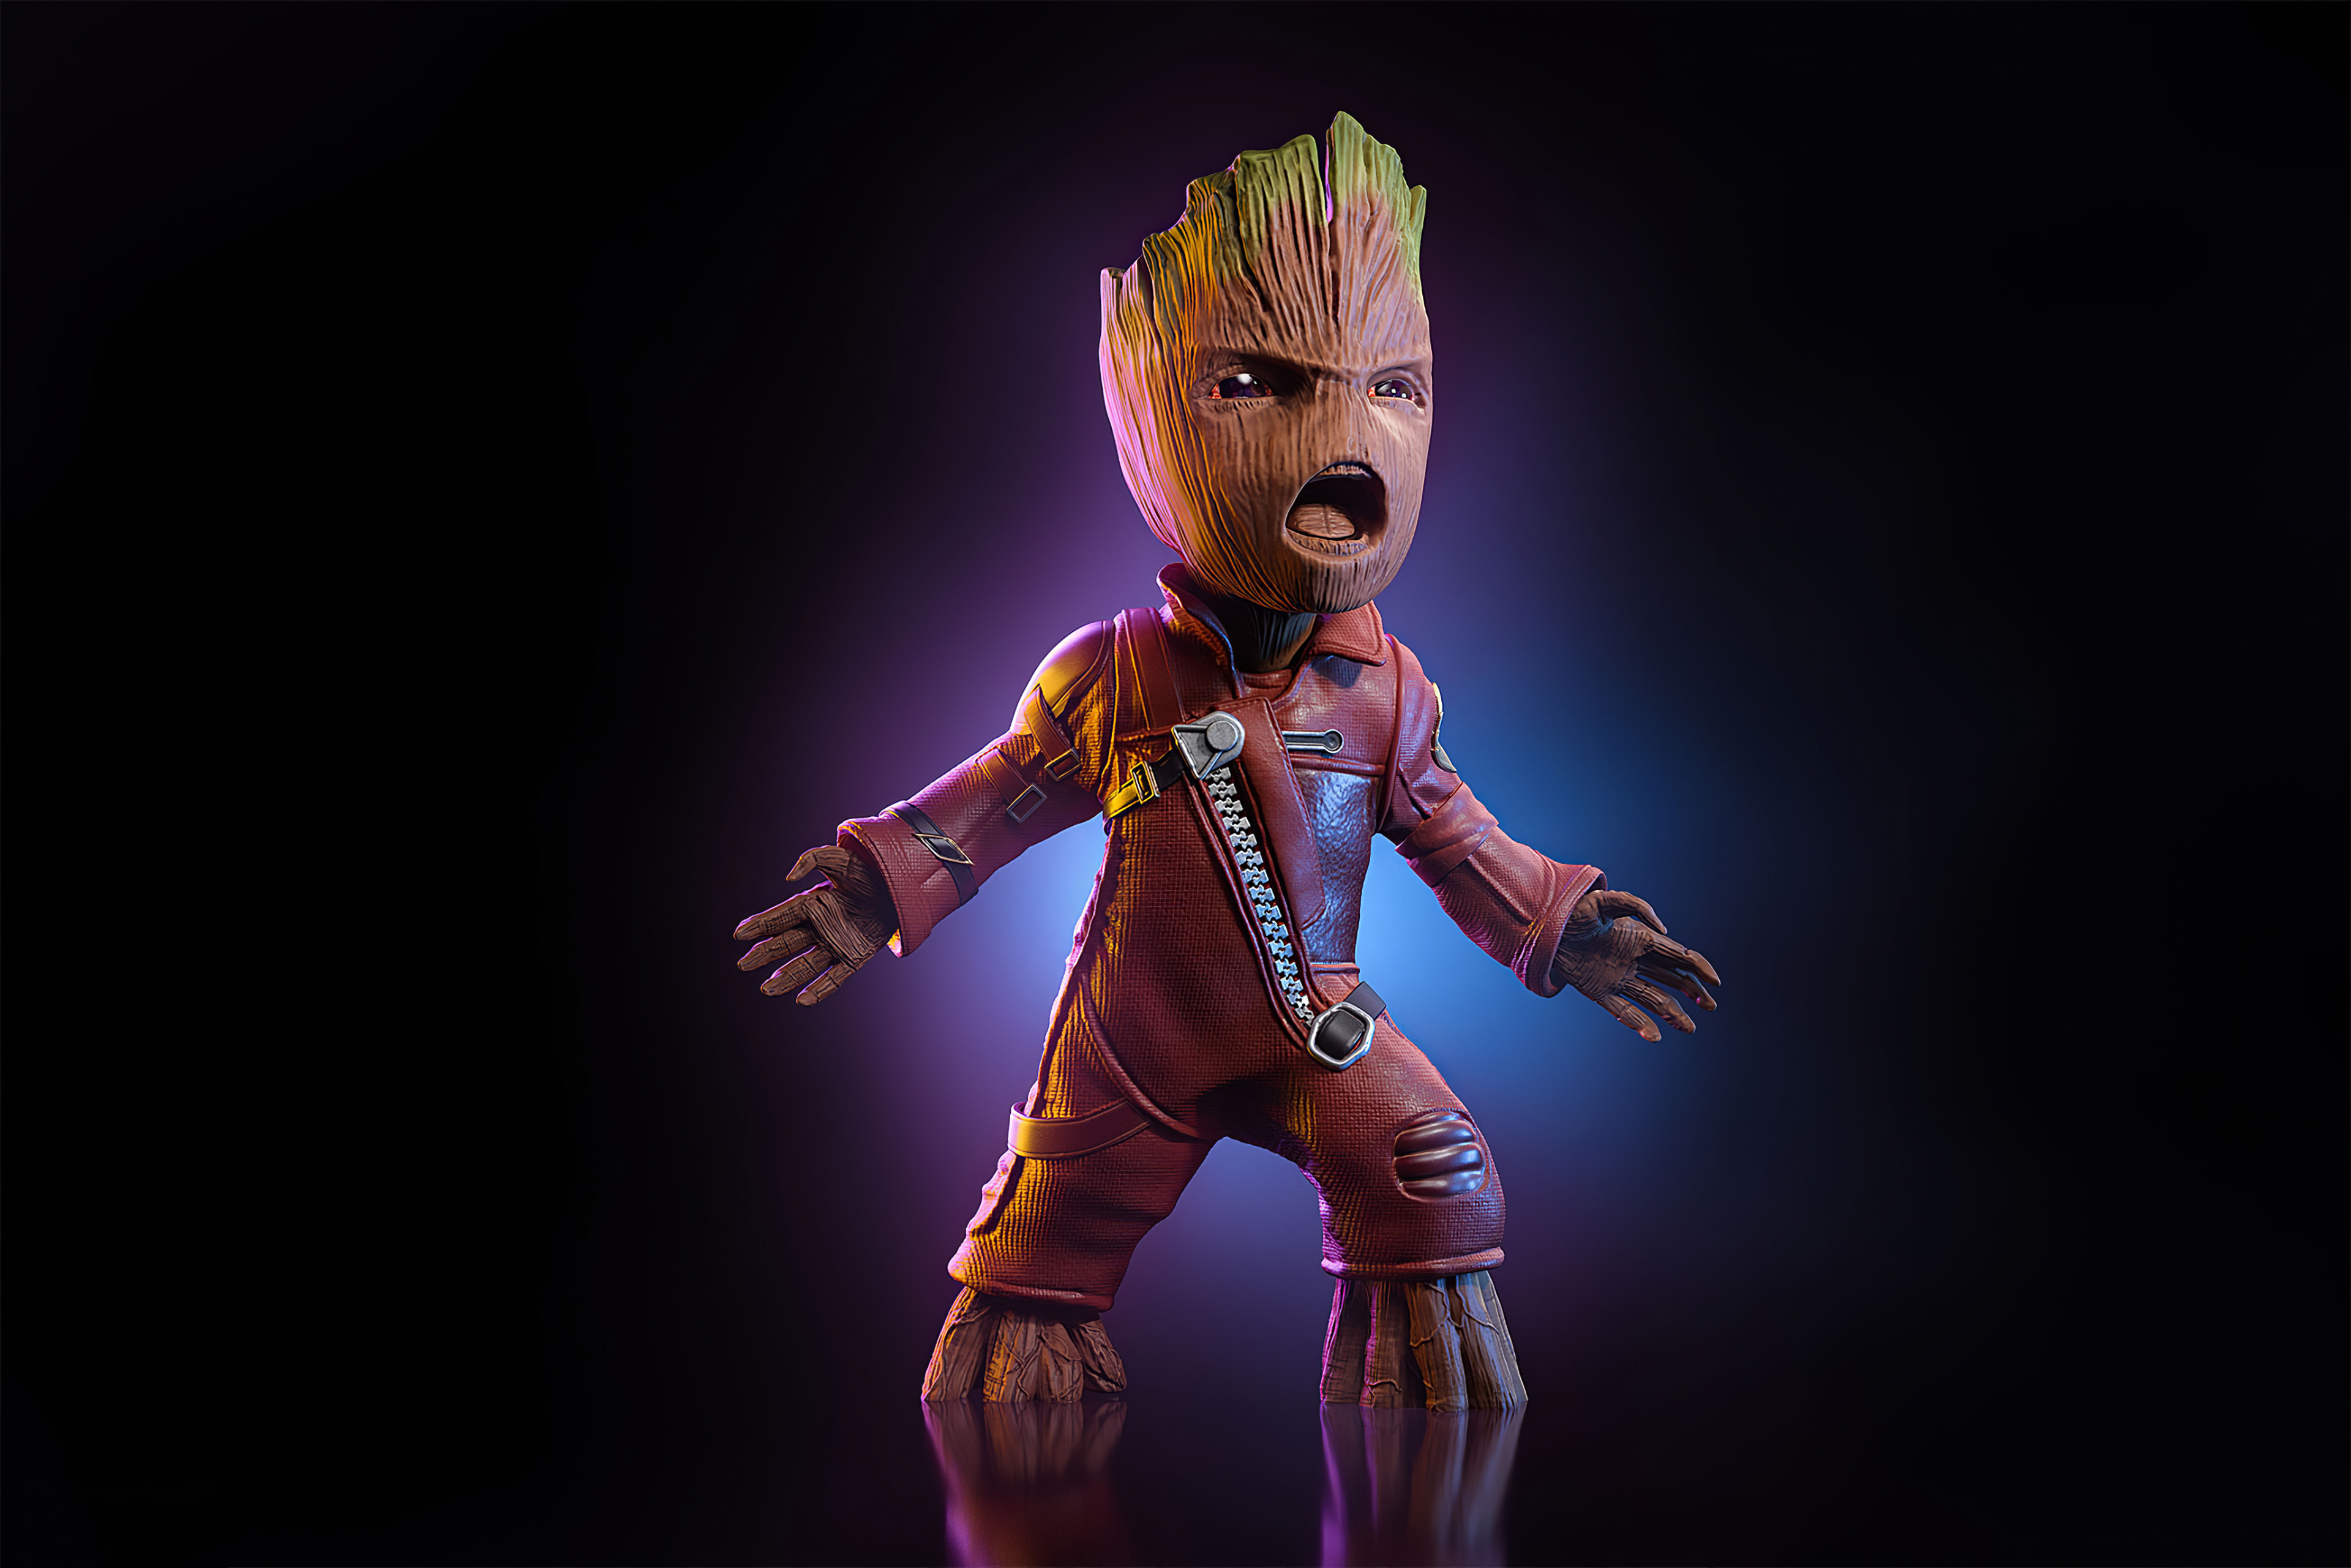 4k Baby Groot 2020 Hd Superheroes 4k Wallpapers Images Backgrounds Photos And Pictures